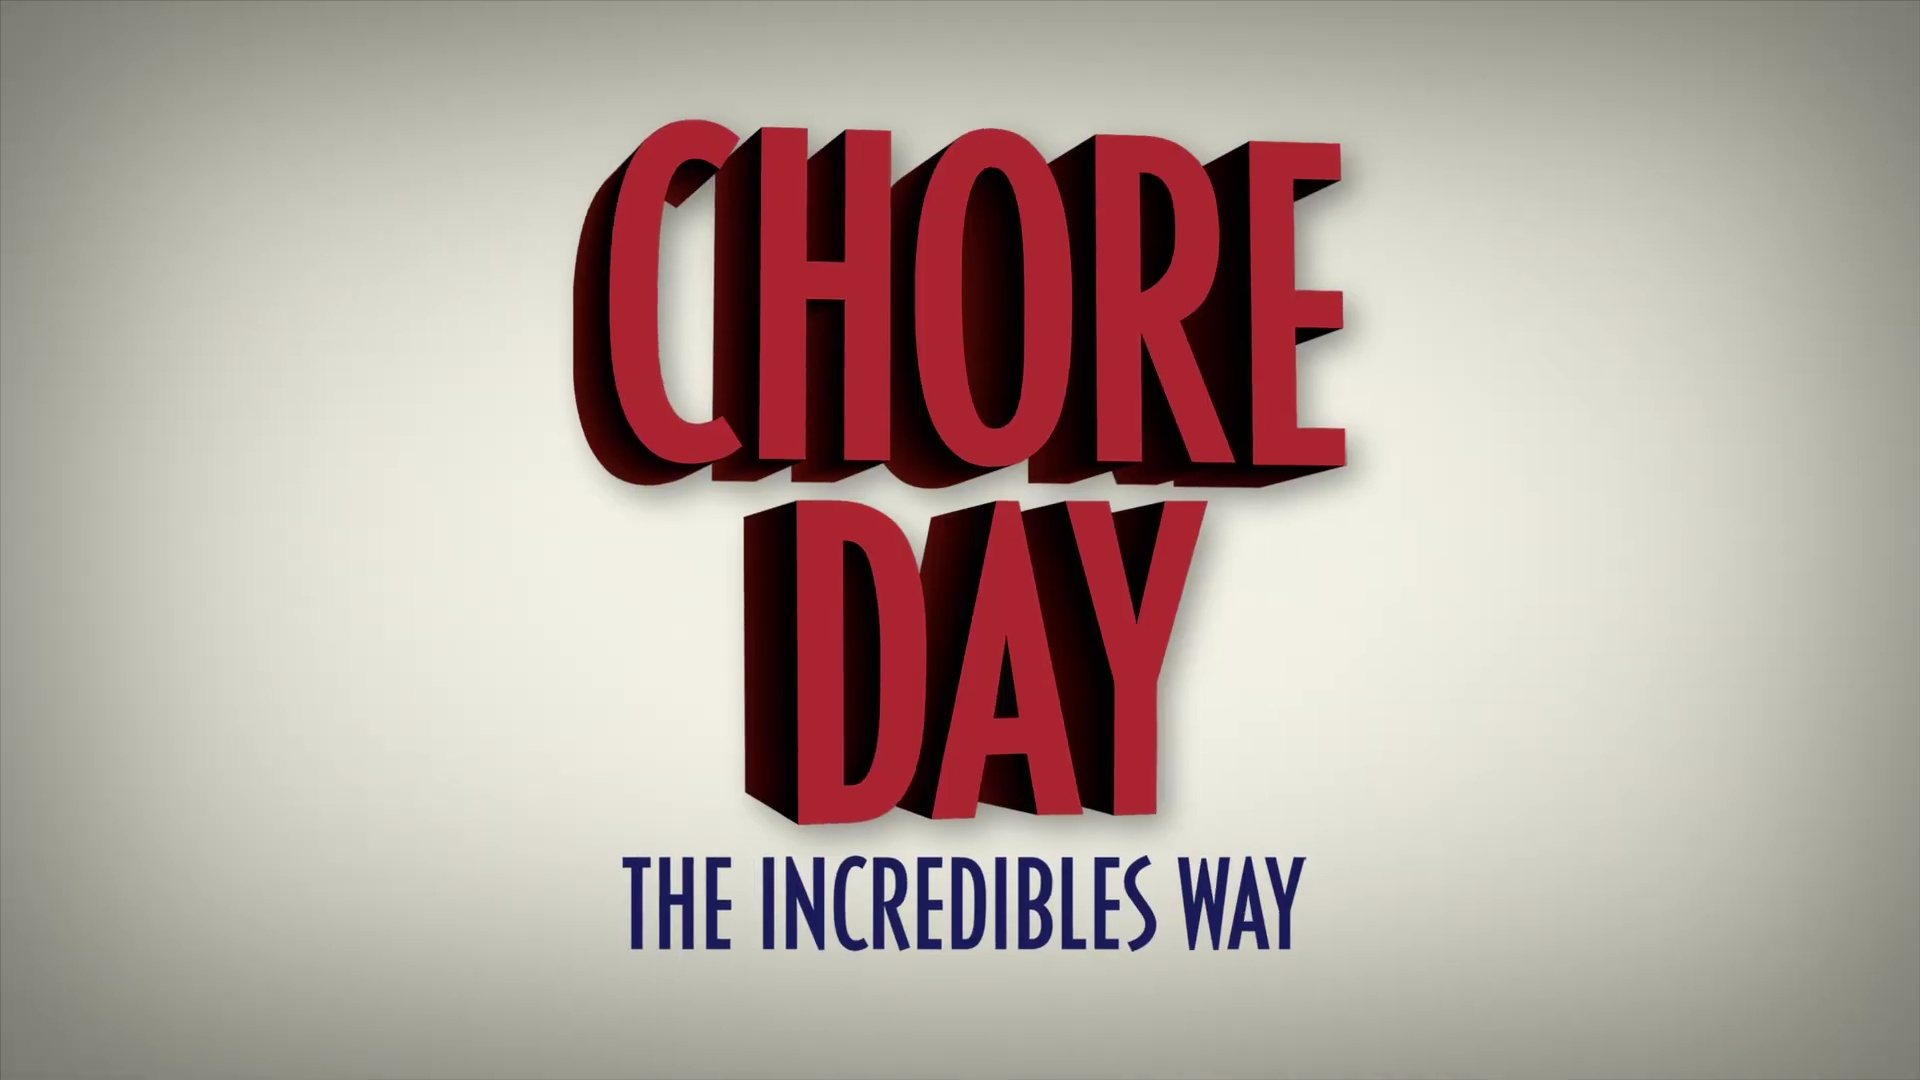 affiche poster chore day incredibles way pixar popcorn disney